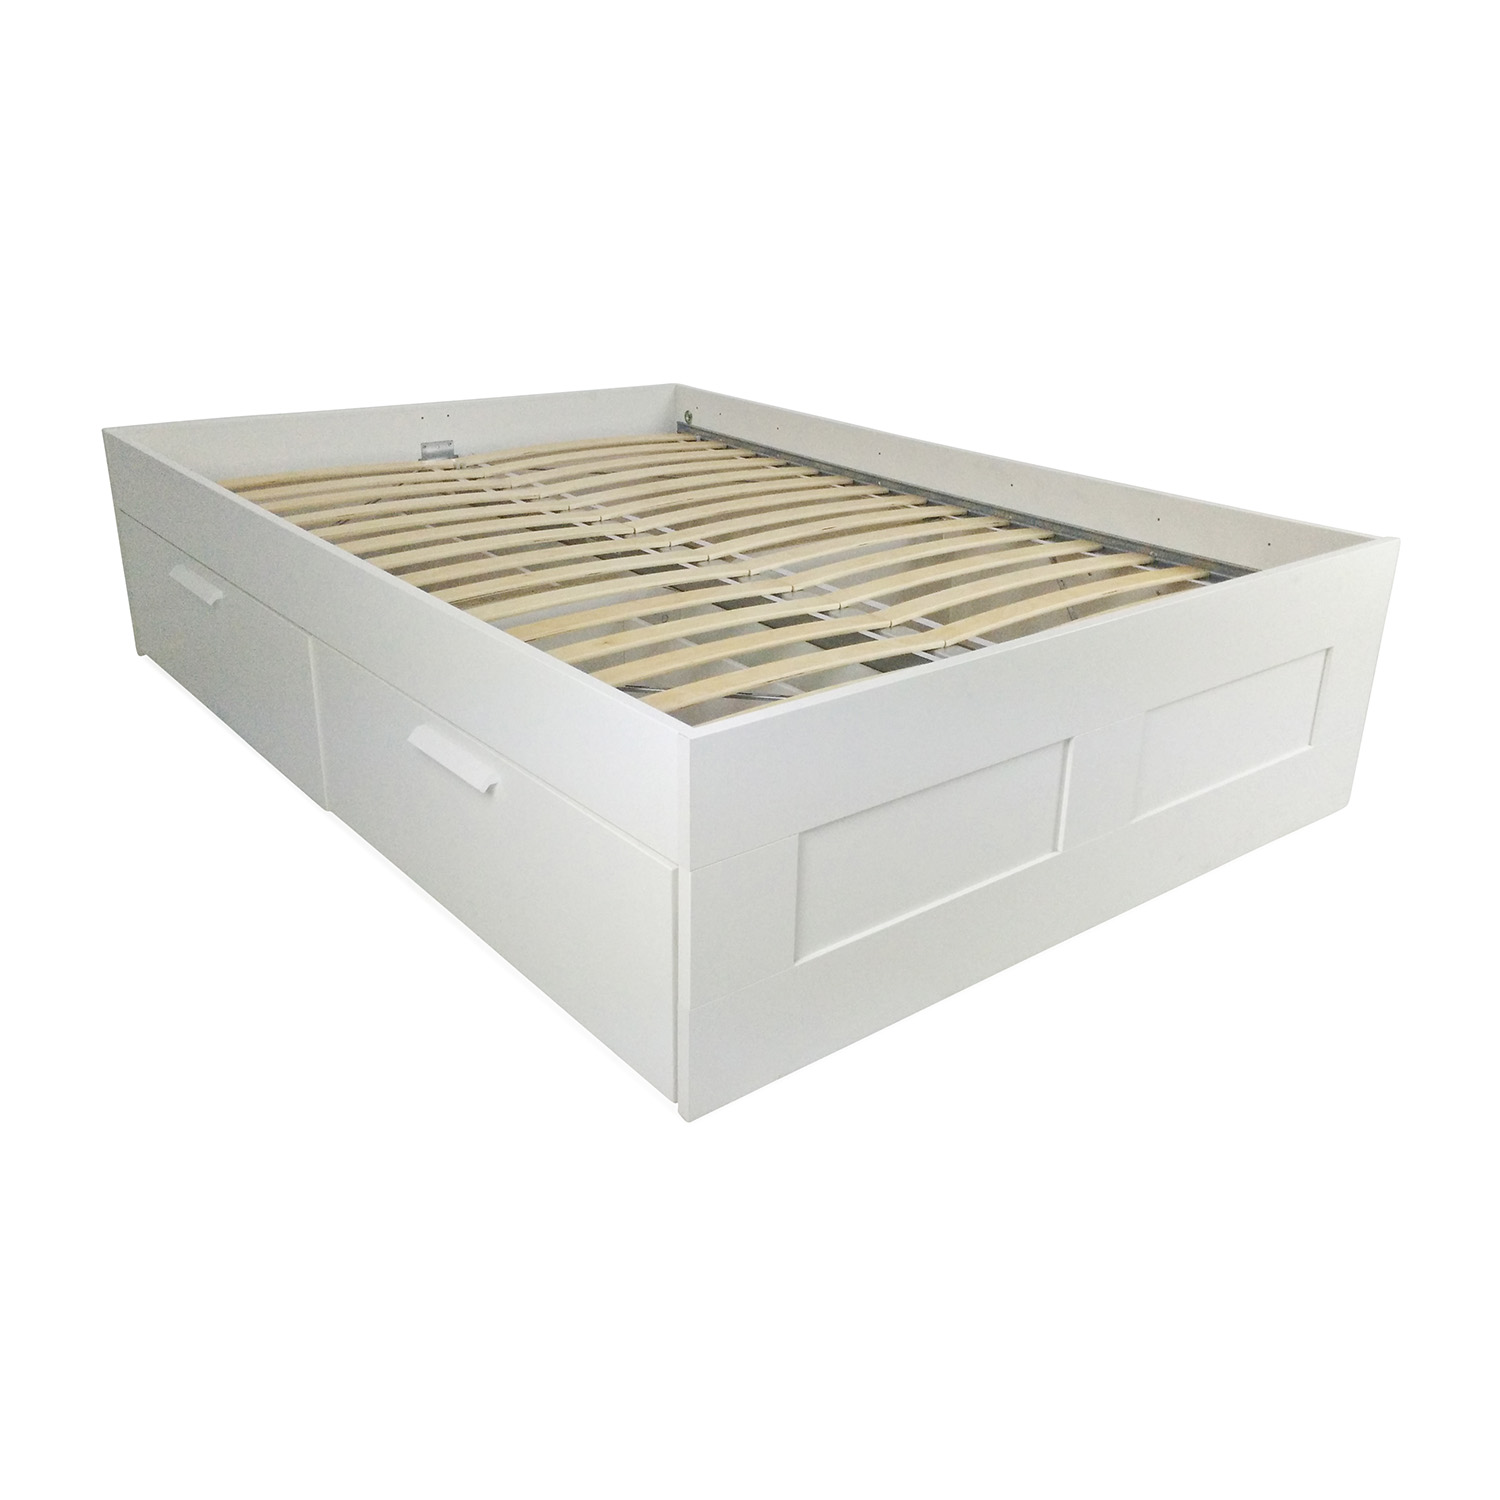 49% OFF IKEA IKEA Brimnes Full Bed Frame Beds